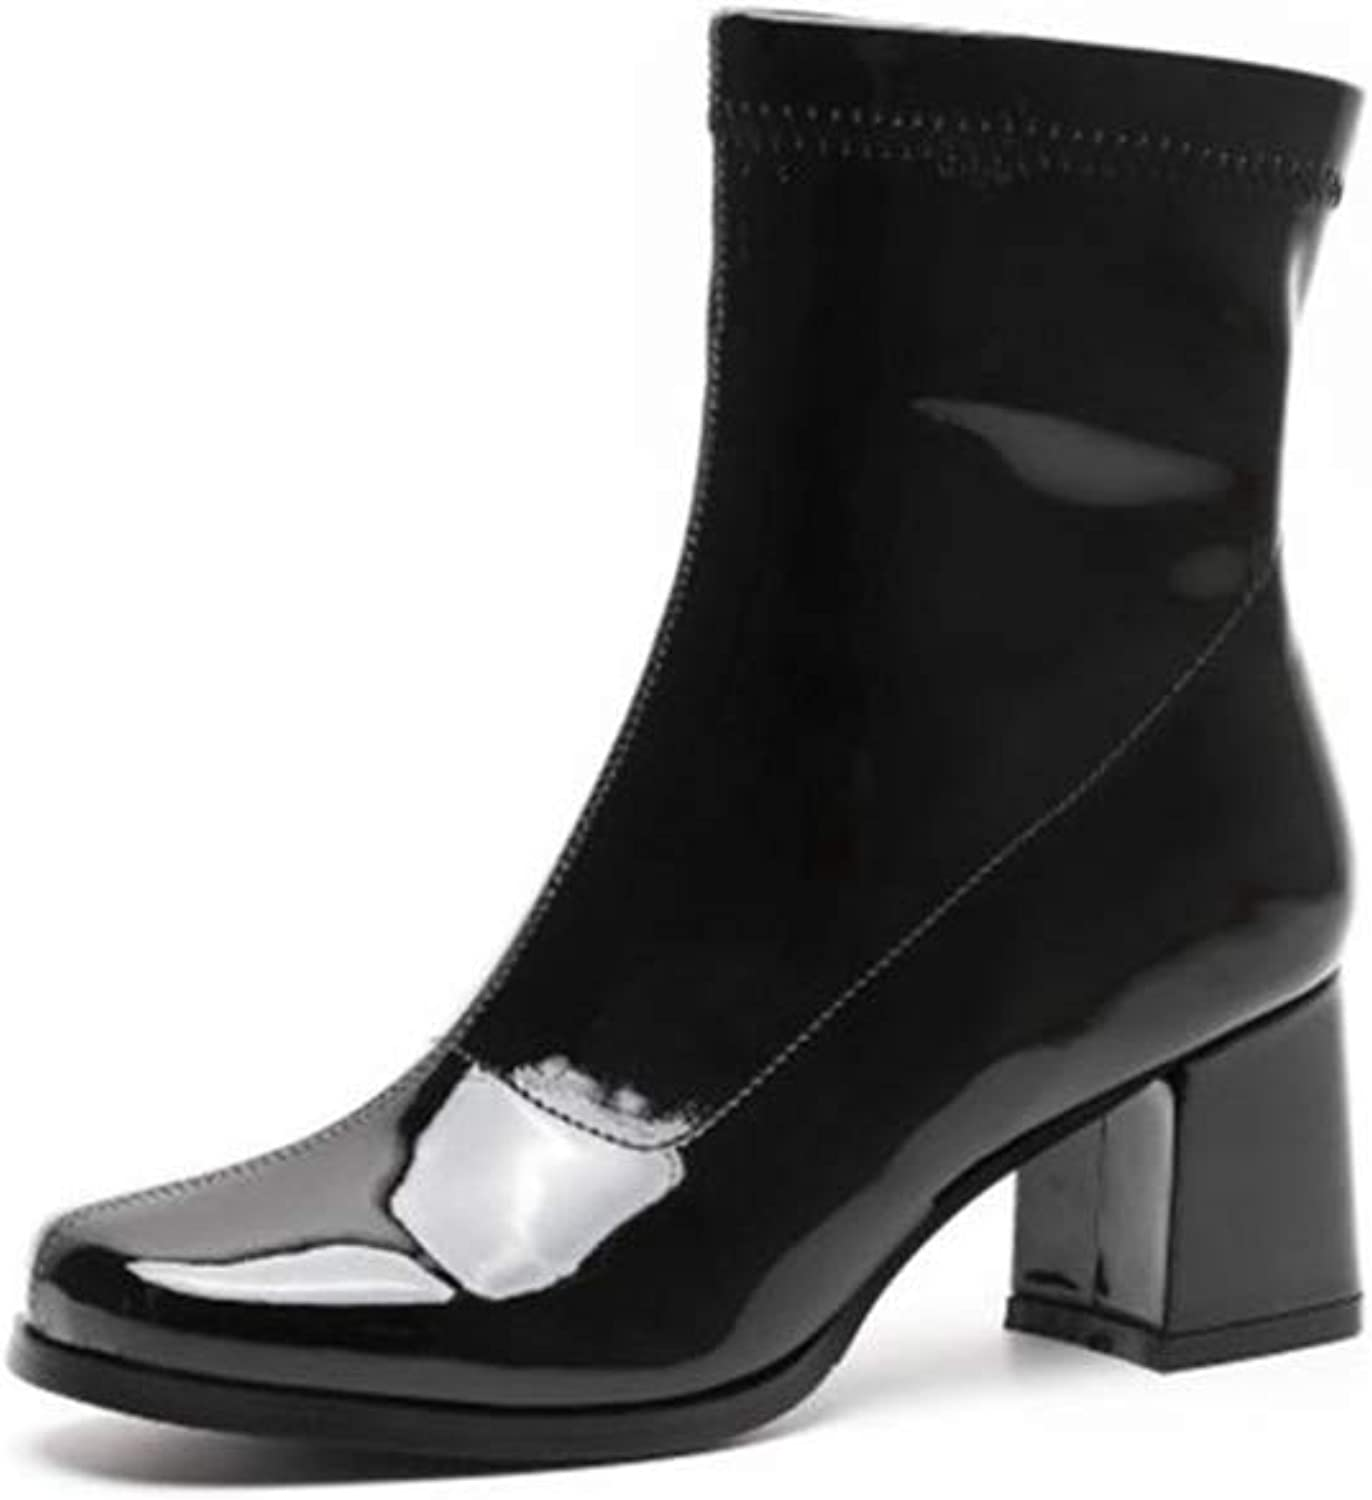 18d0312158f79 Ankle Boots Women Round Toe Chunky Heels High Cut Zip-Up Mid Calf ...